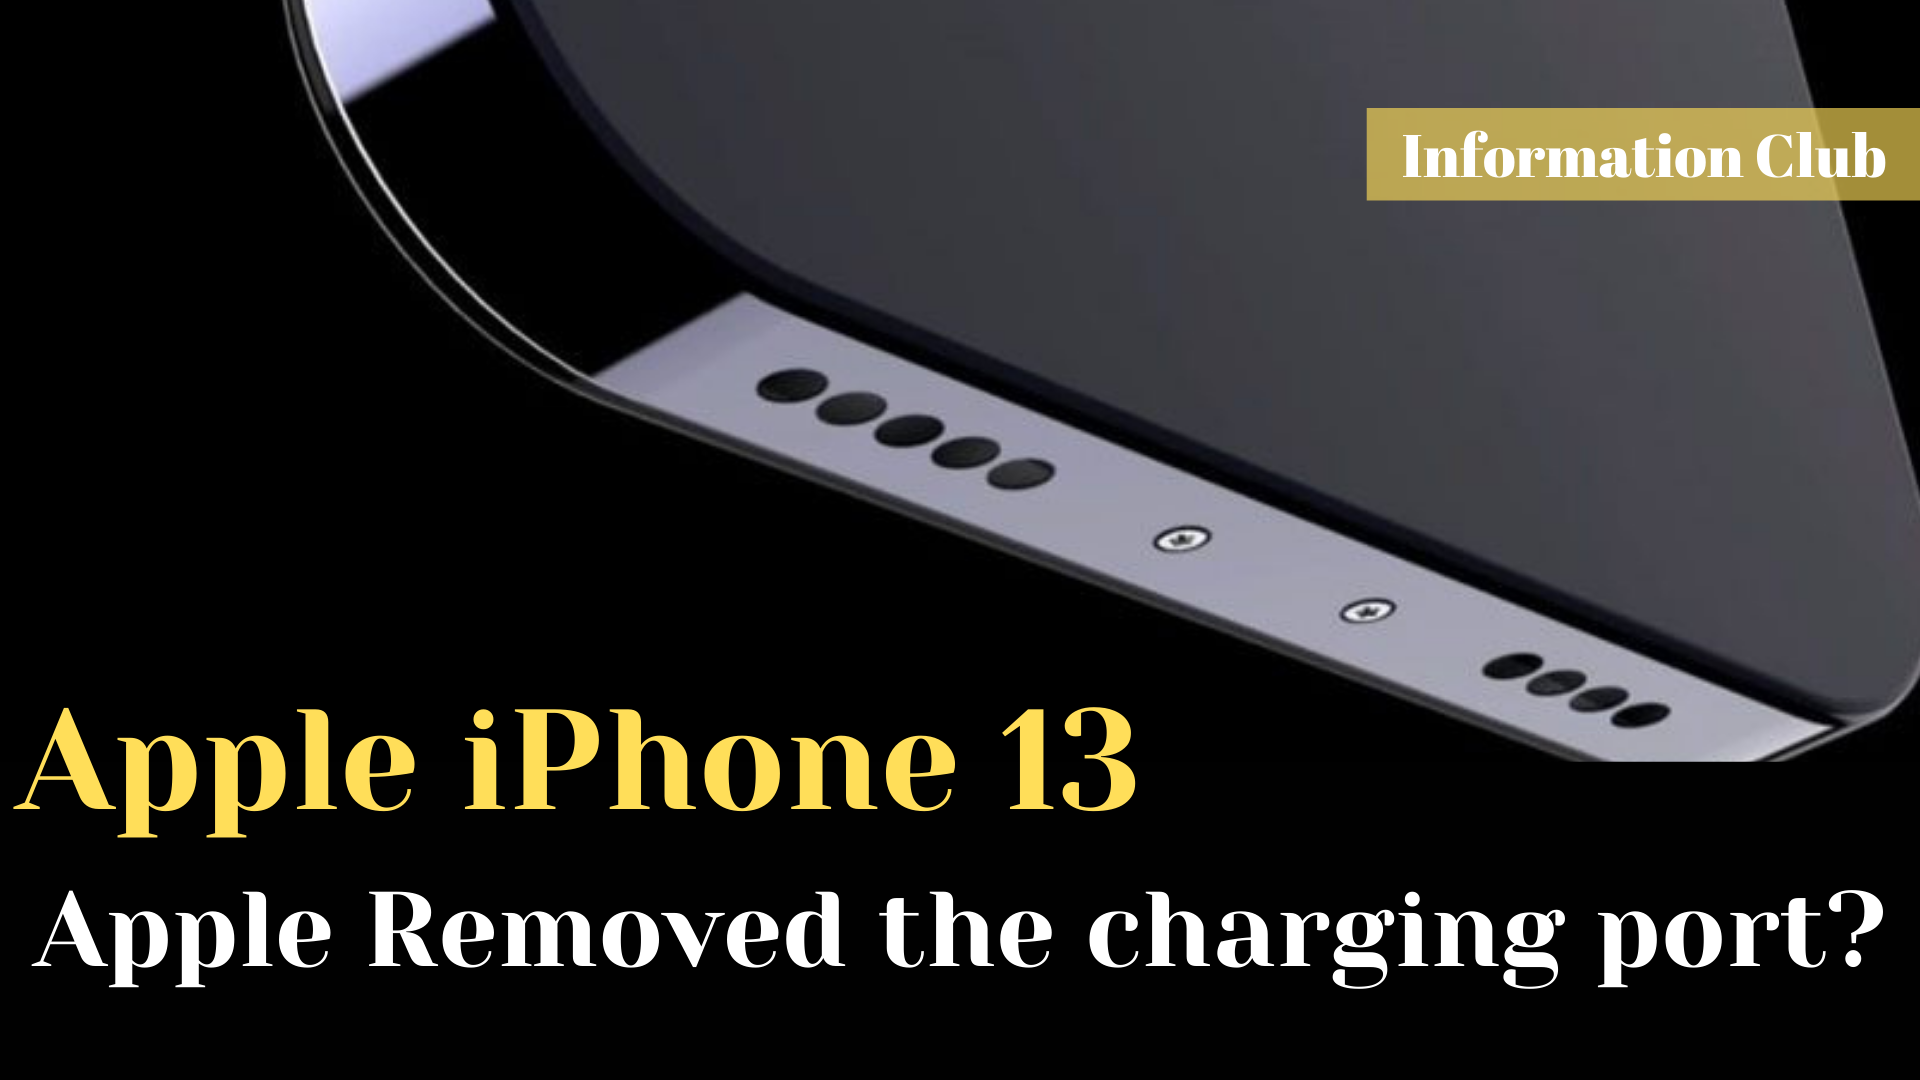 https://www.clubinfonline.com/2020/12/11/apple-removed-the-charging-port-from-iphone-13-update/